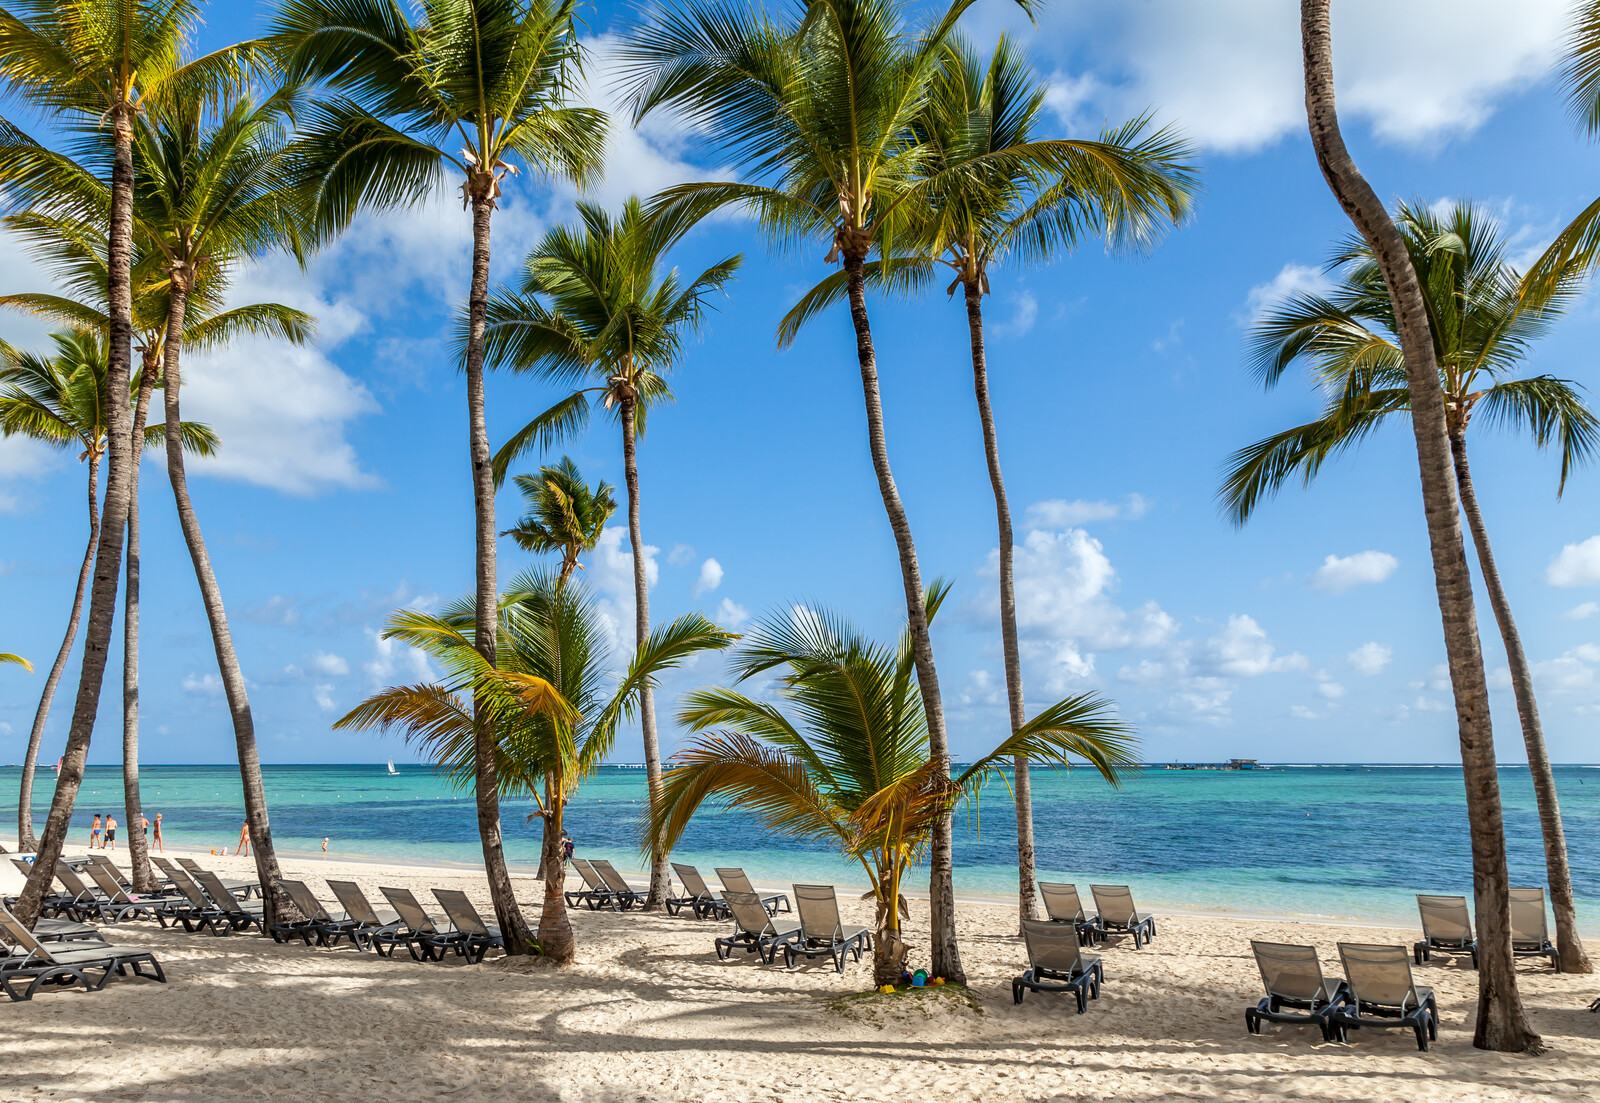 white sand beaches with clear blue waters in front, along the beach are hotel lounge chairs with palm trees providing shade